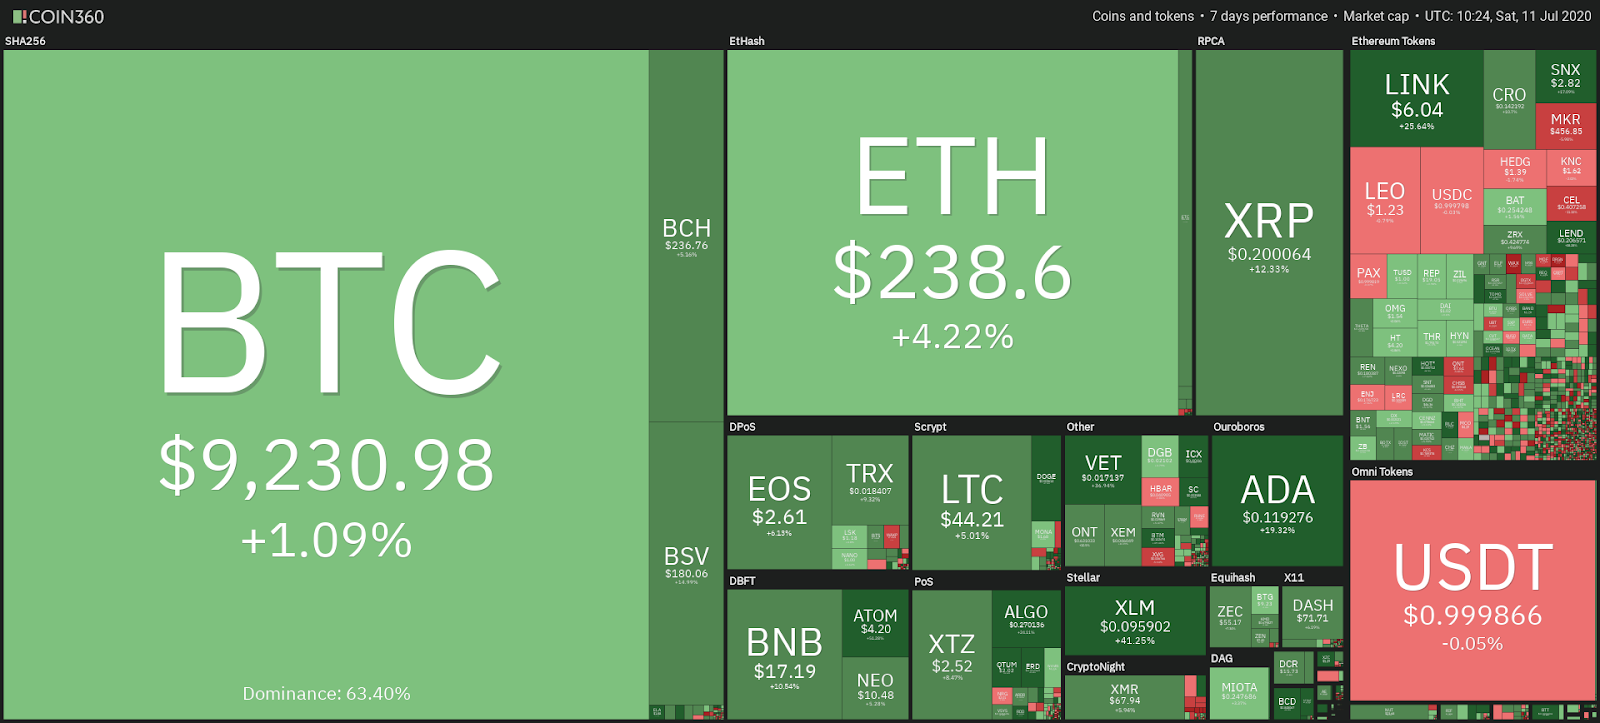 Cryptocurrency market performance in the past 7 days